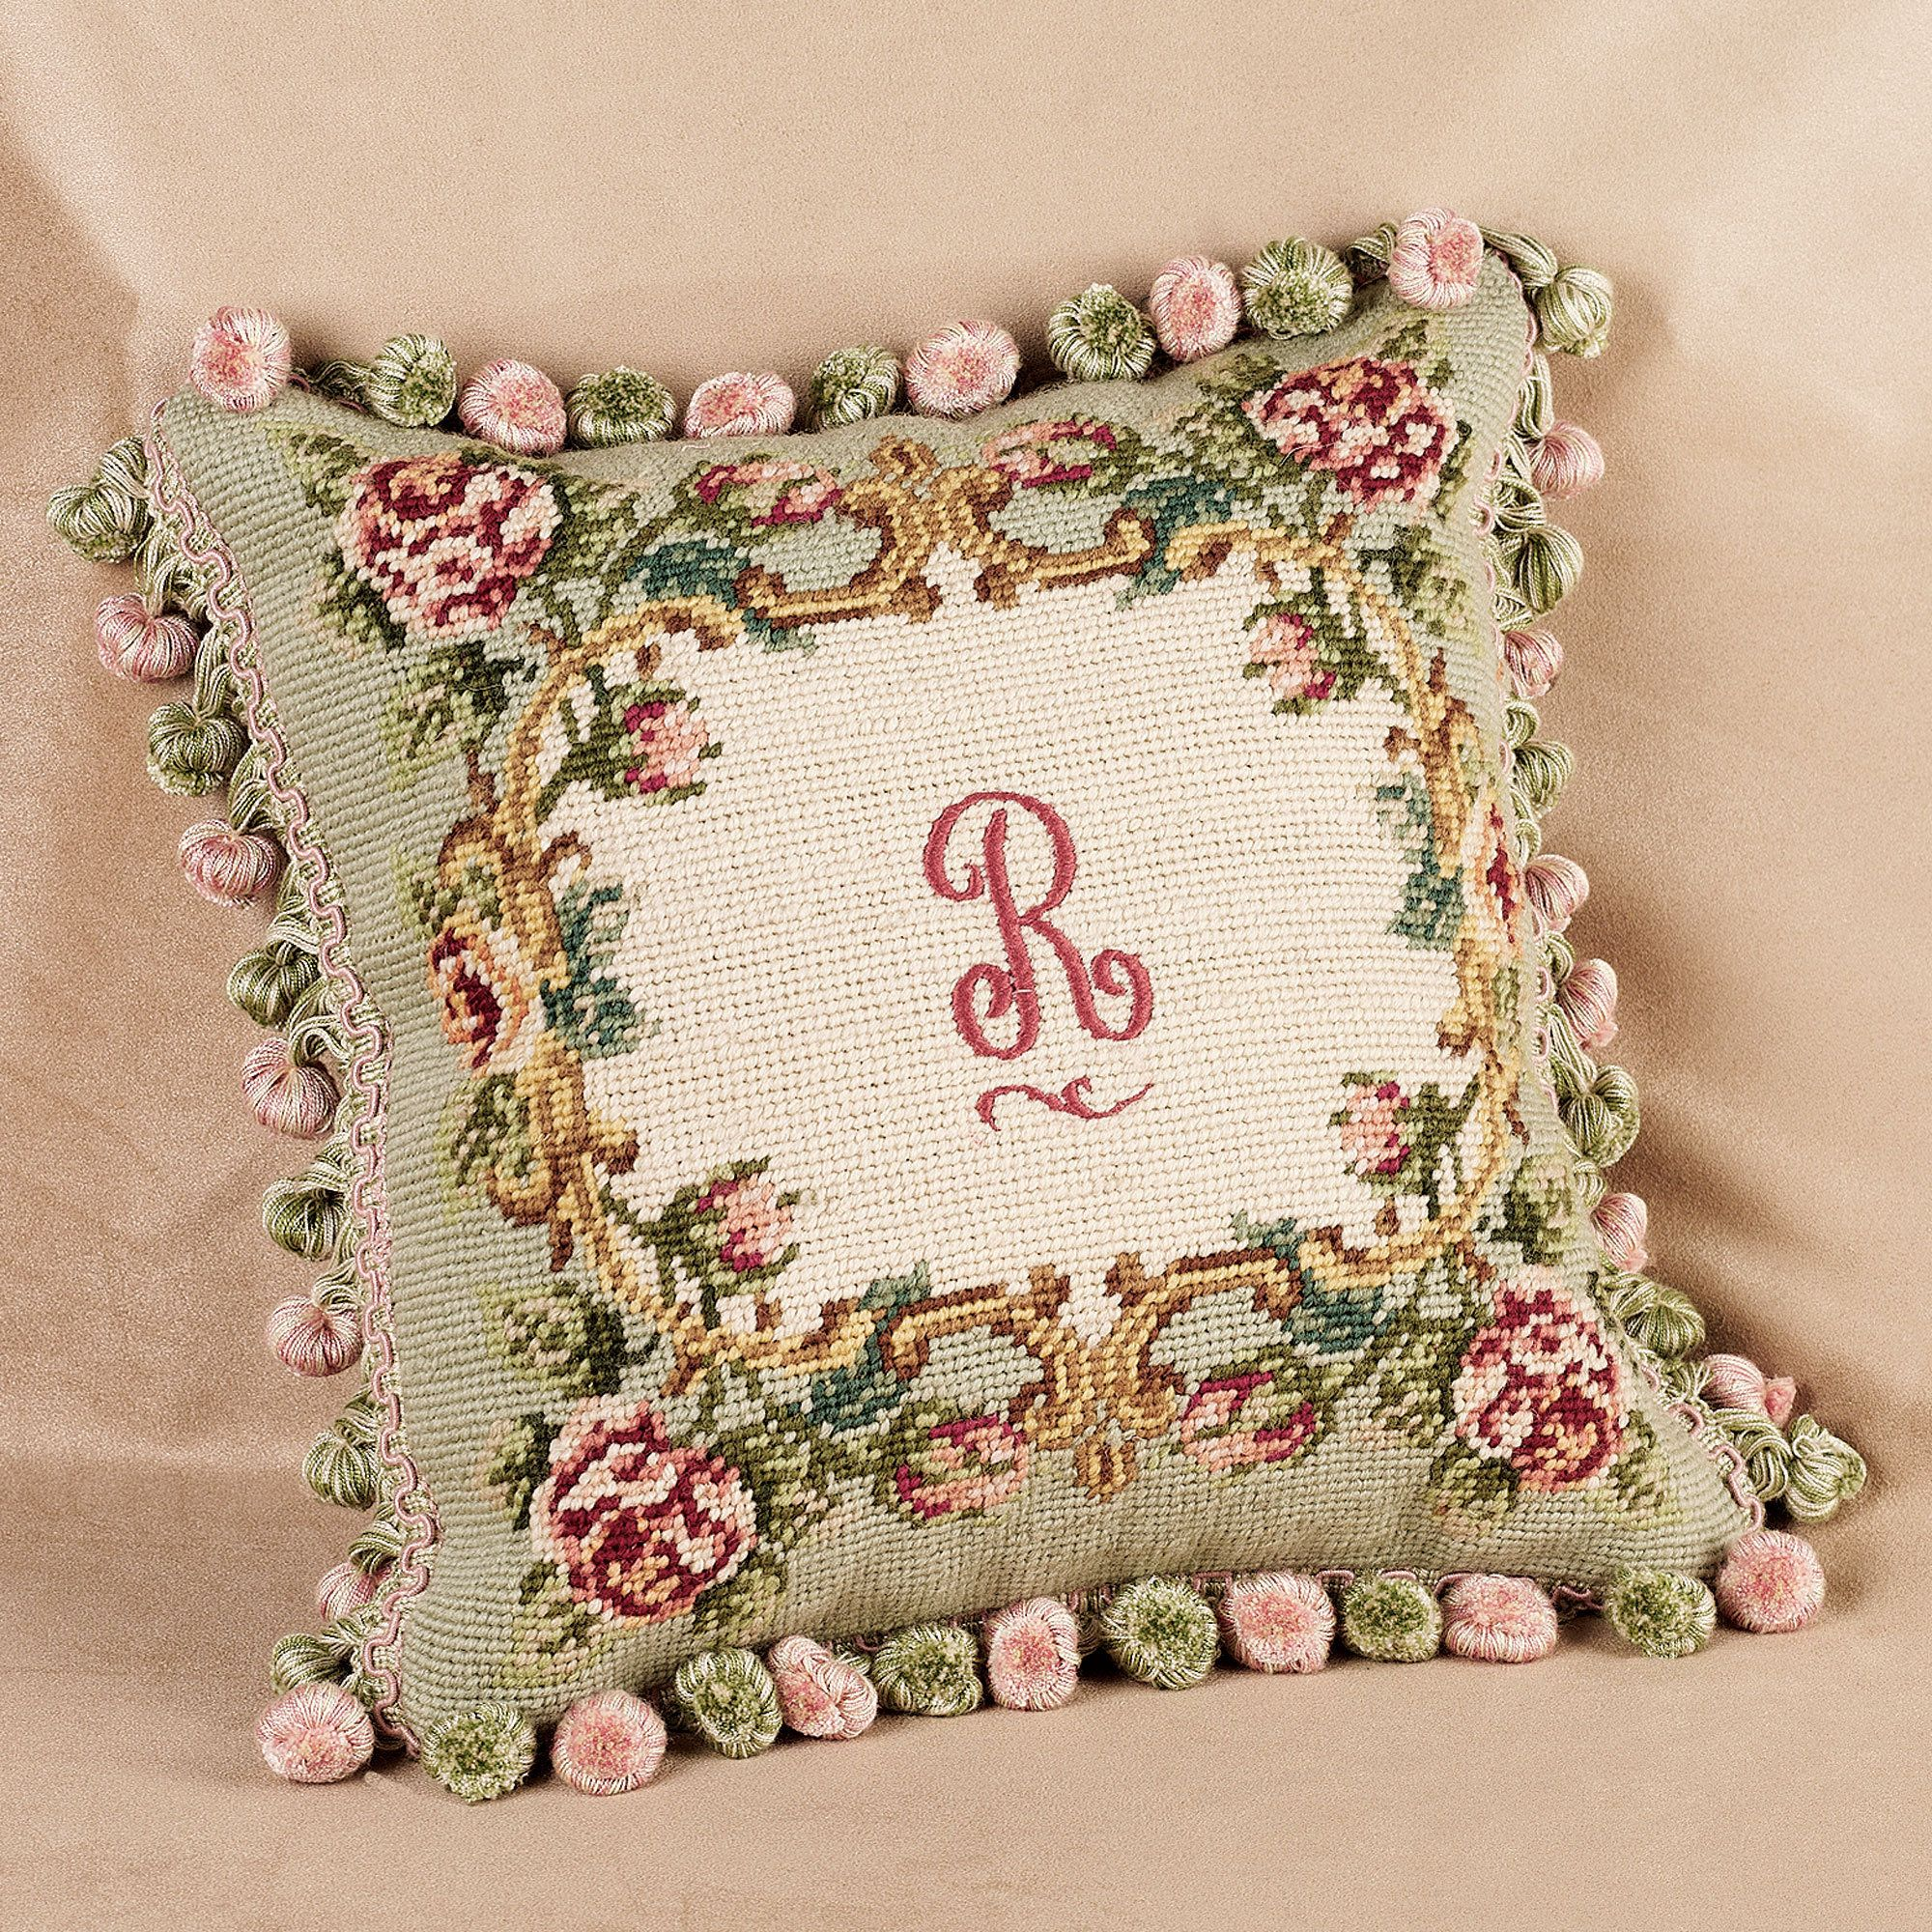 Rose Monogram Needlepoint Pillow